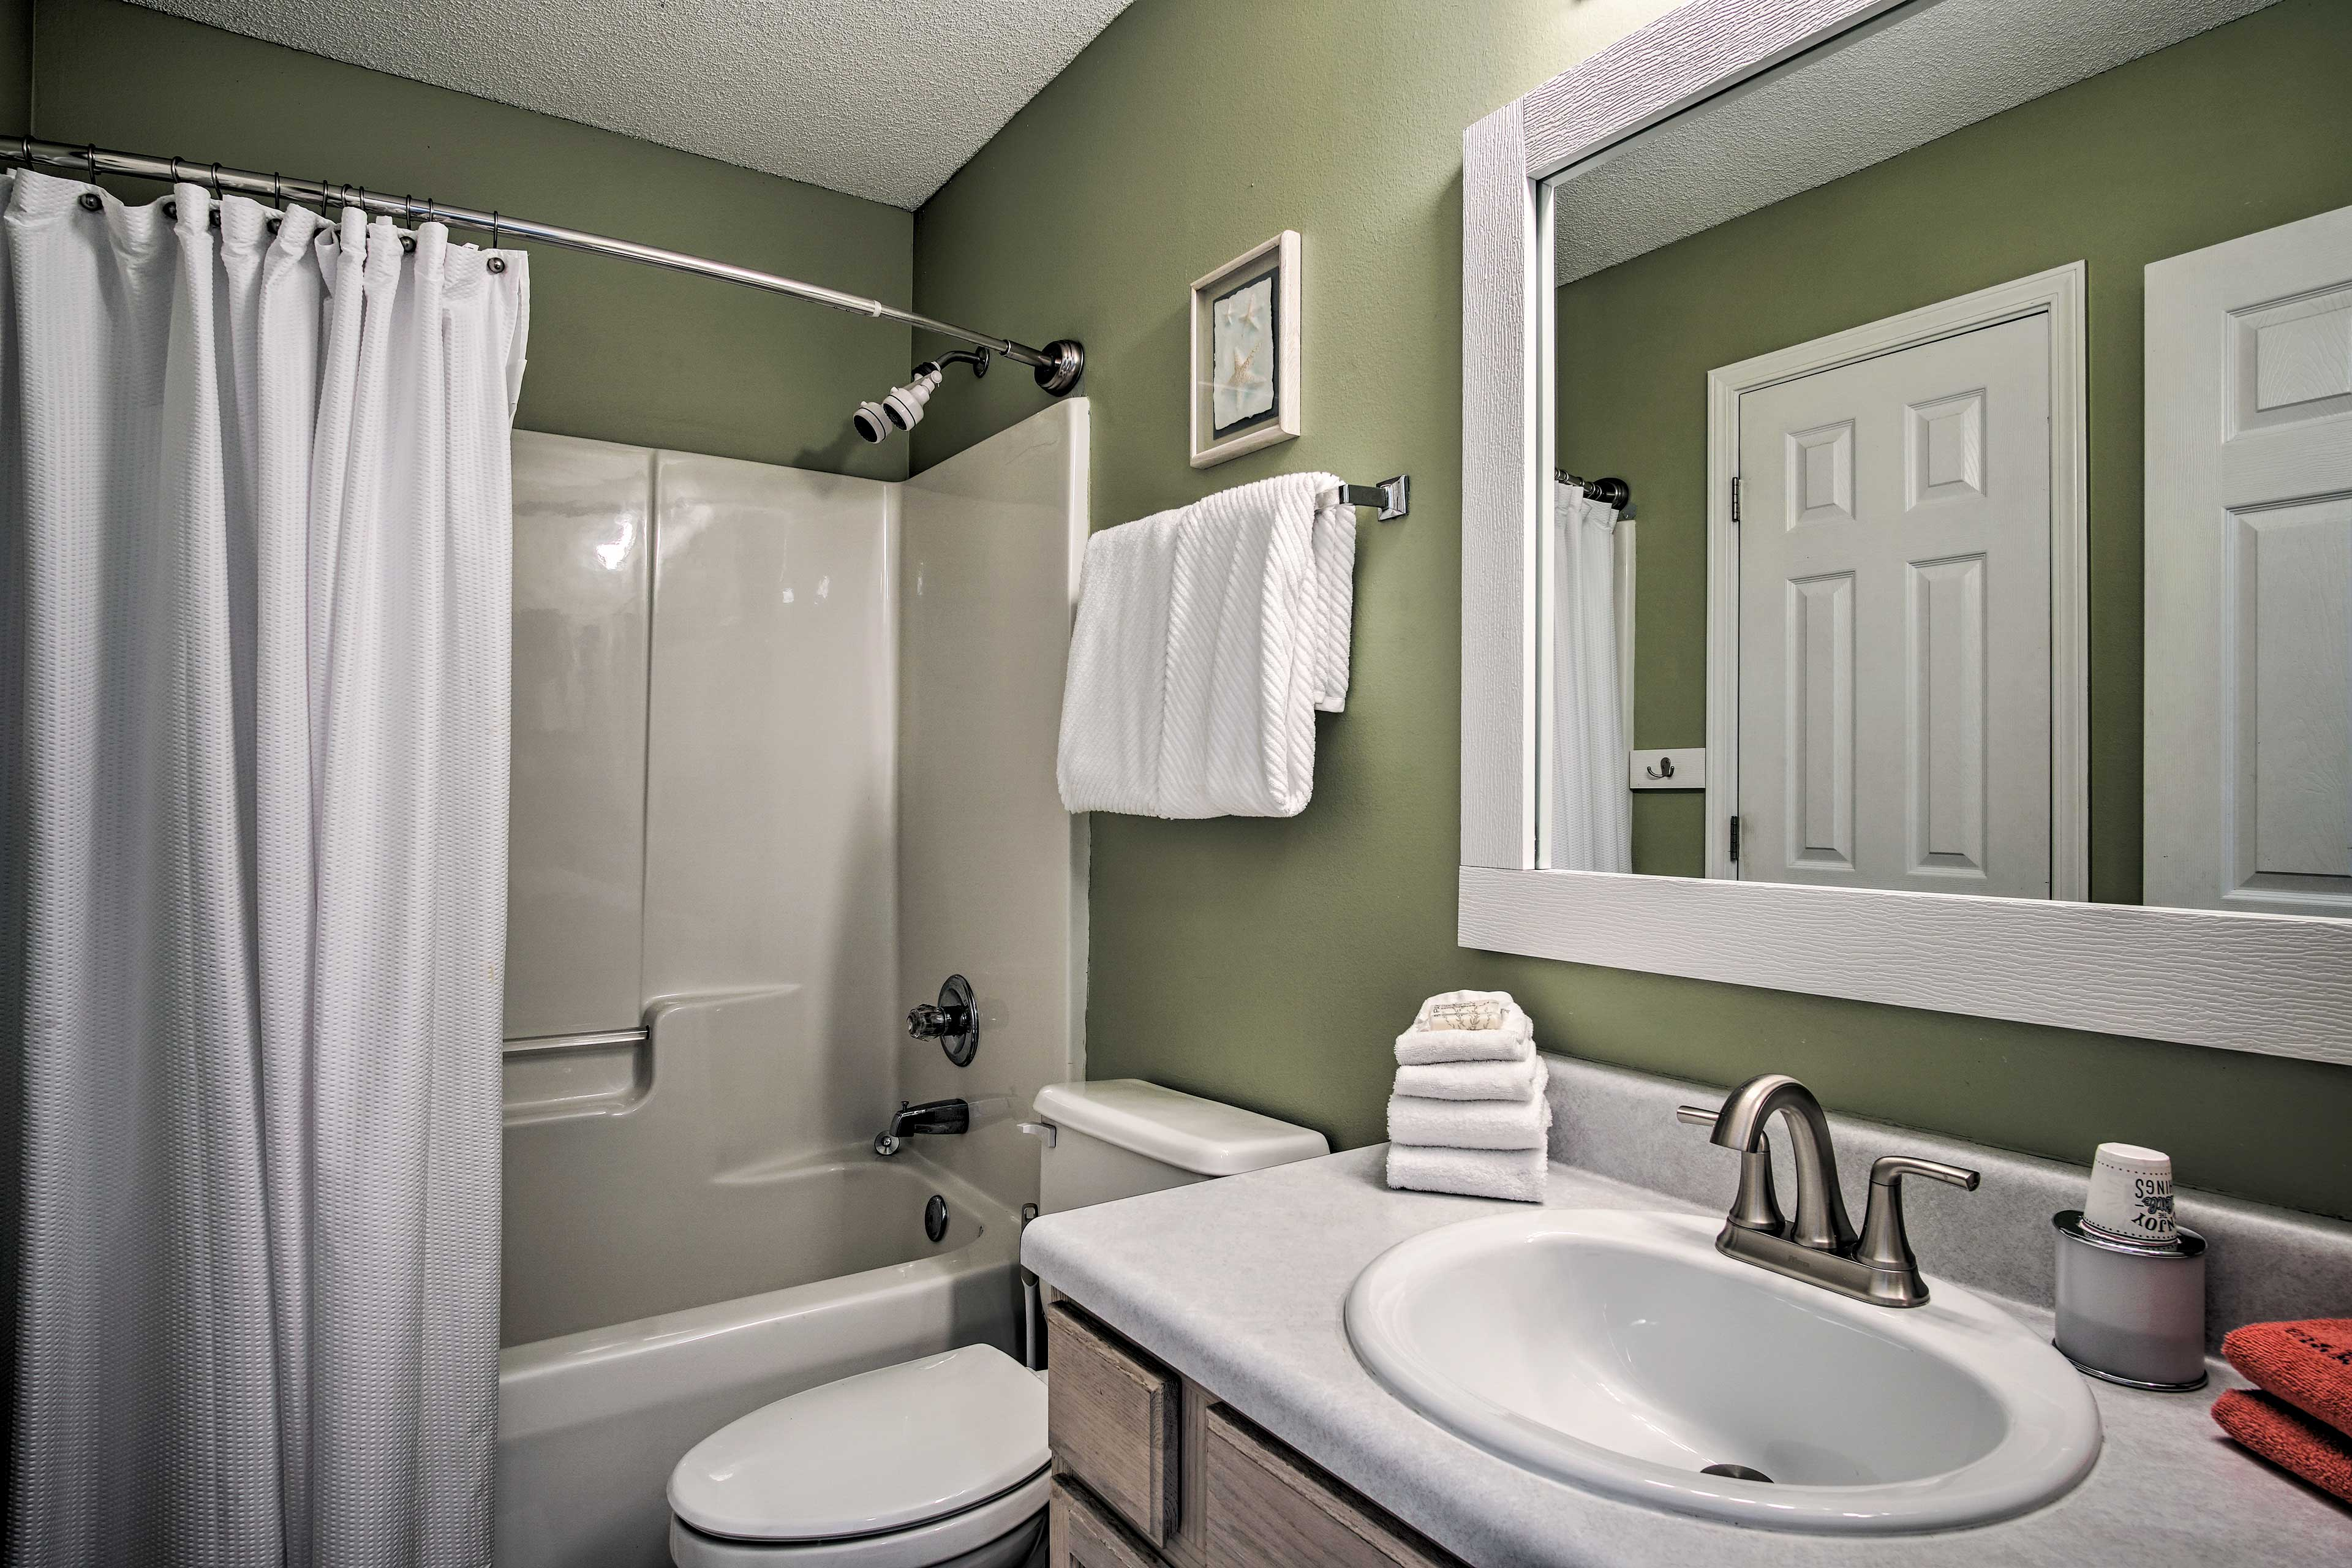 A traditional shower/tub combo is provided in this full bathroom.